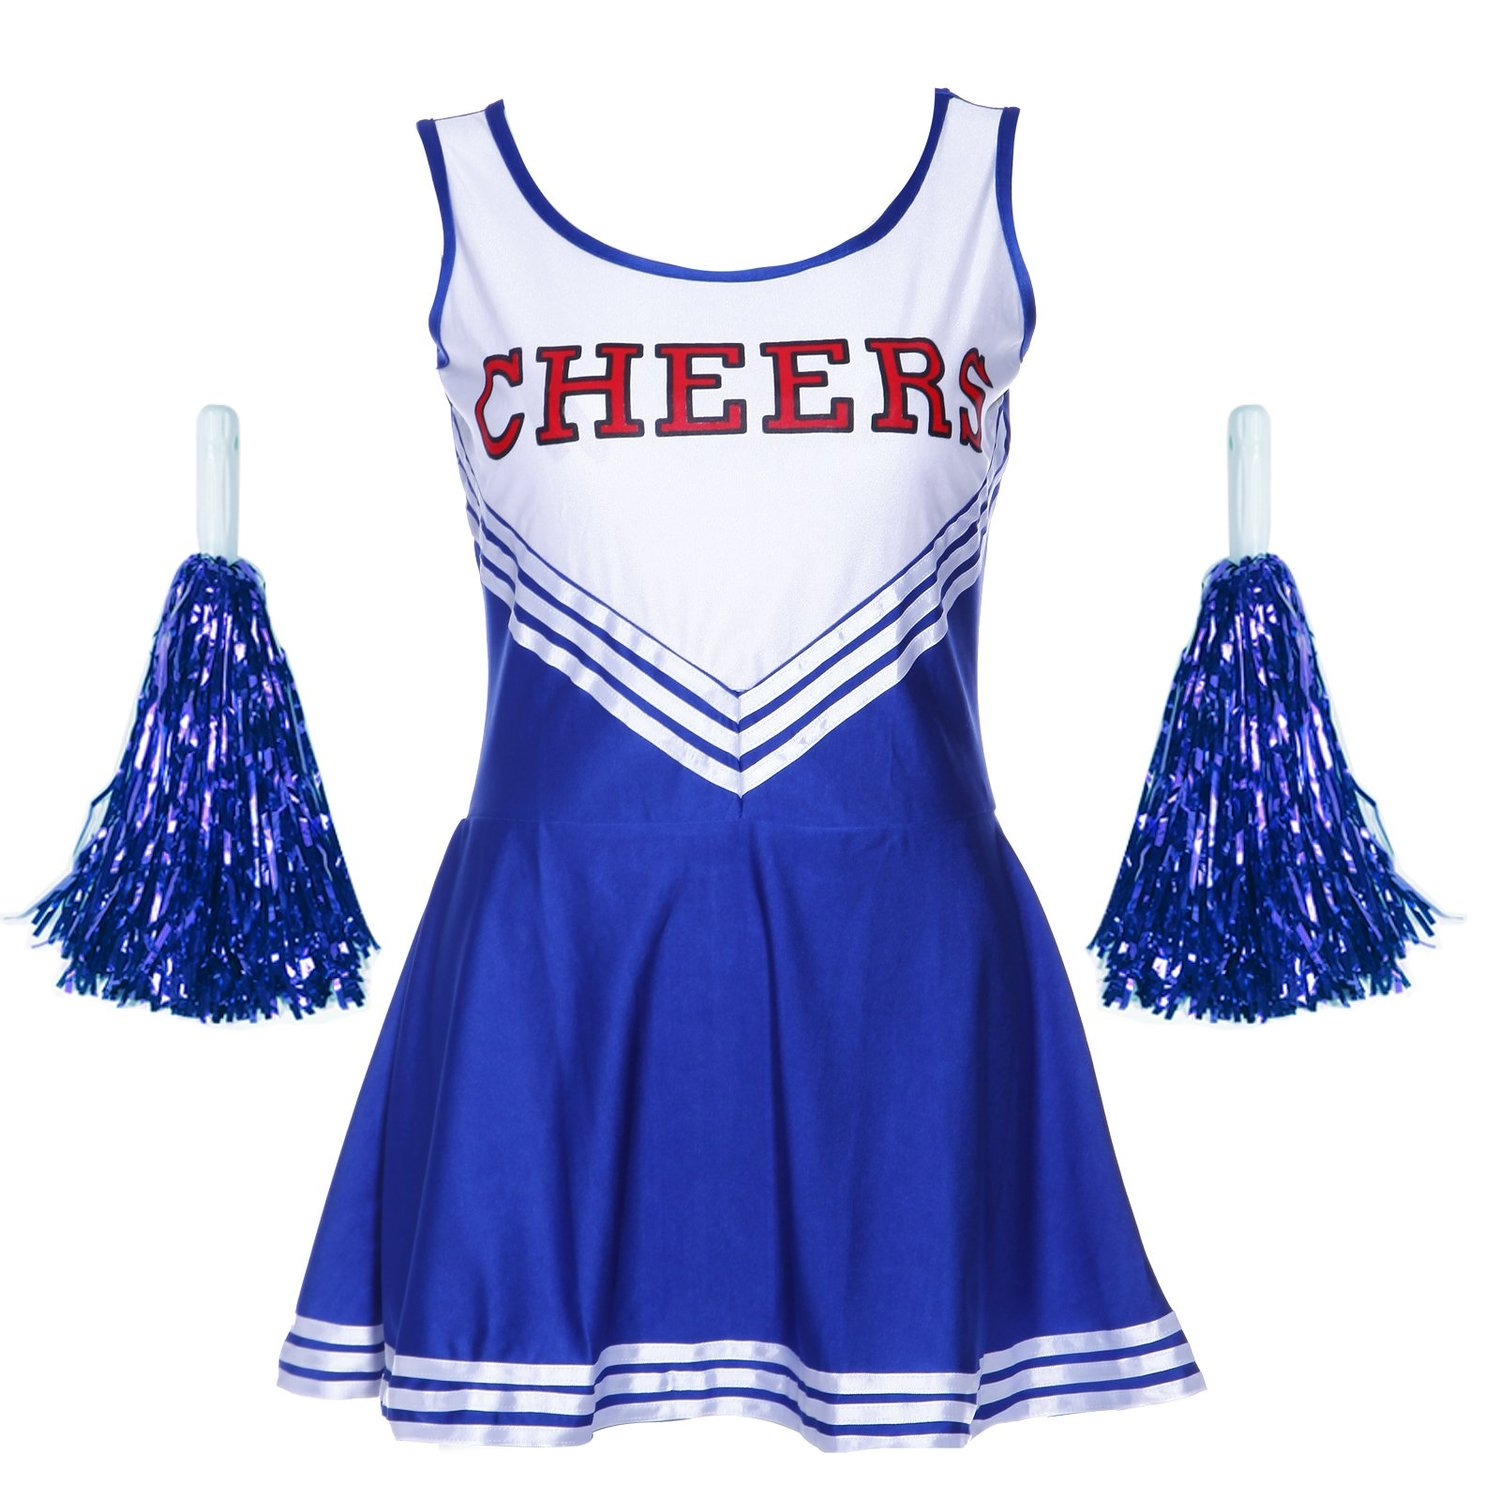 Pom-pom girl tank top dress cheer leader blue suit costume XL (42-44) school